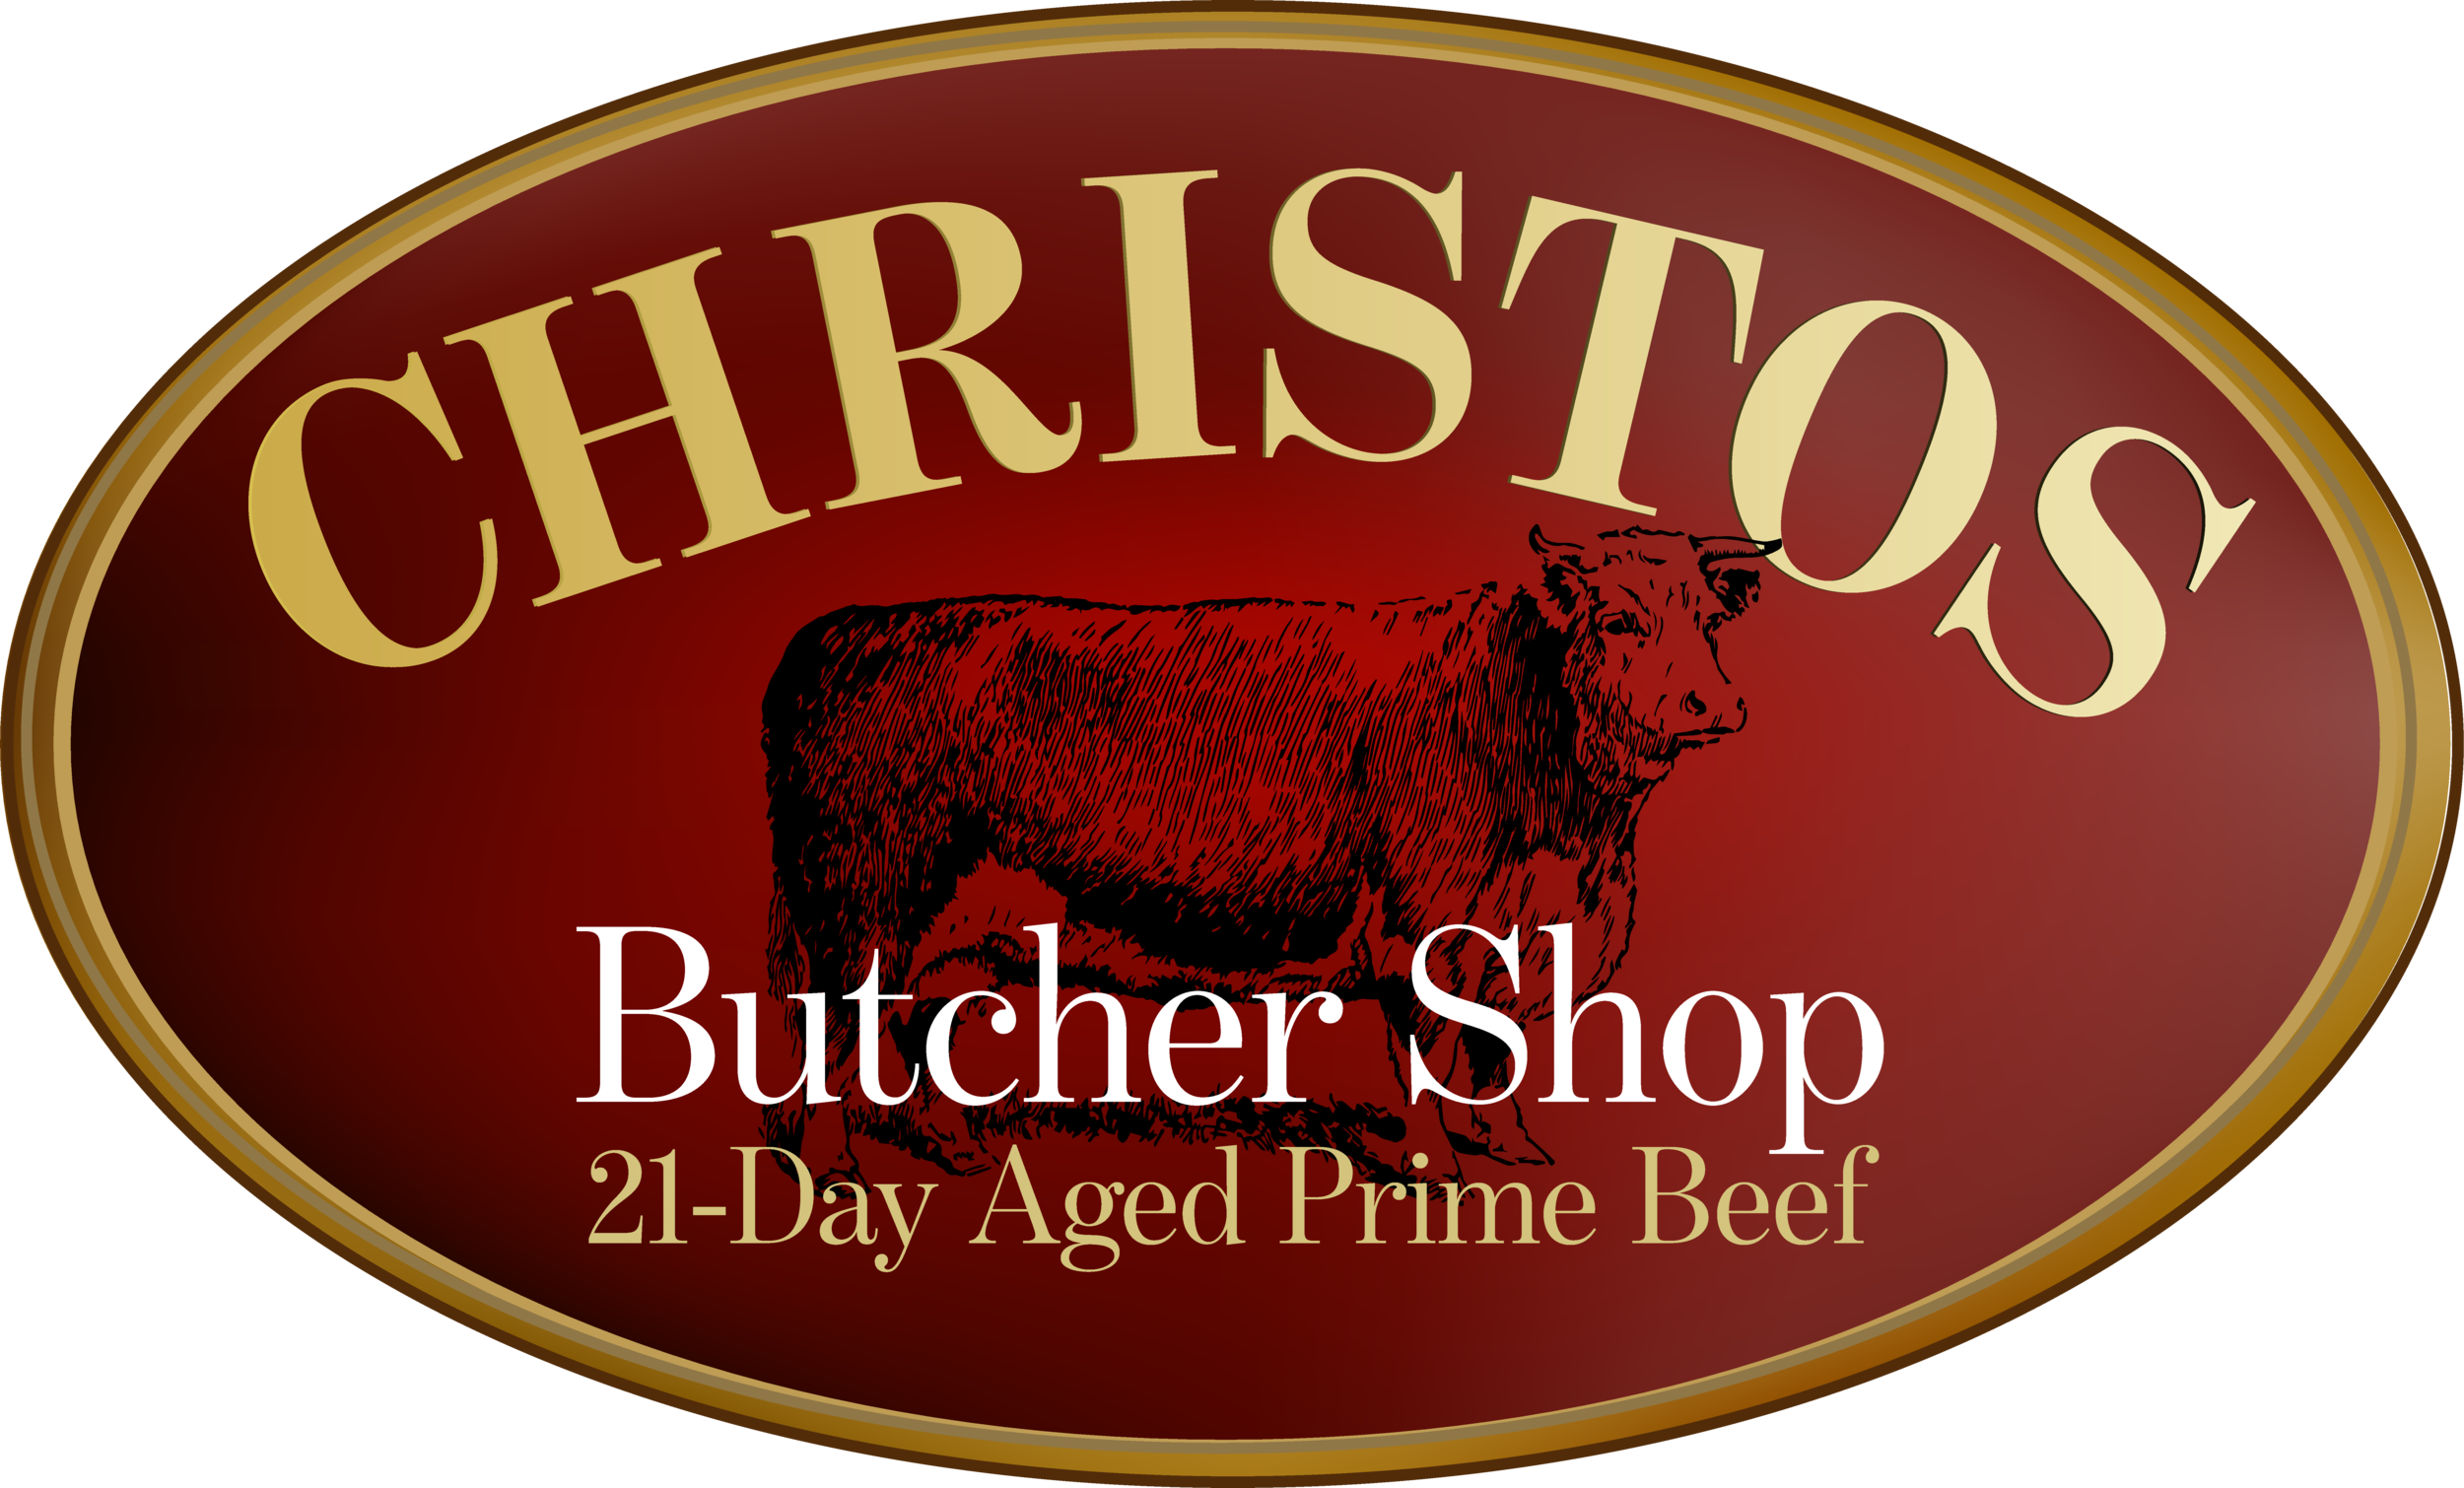 CRISTOS STEAK HOUSE real butcher.png